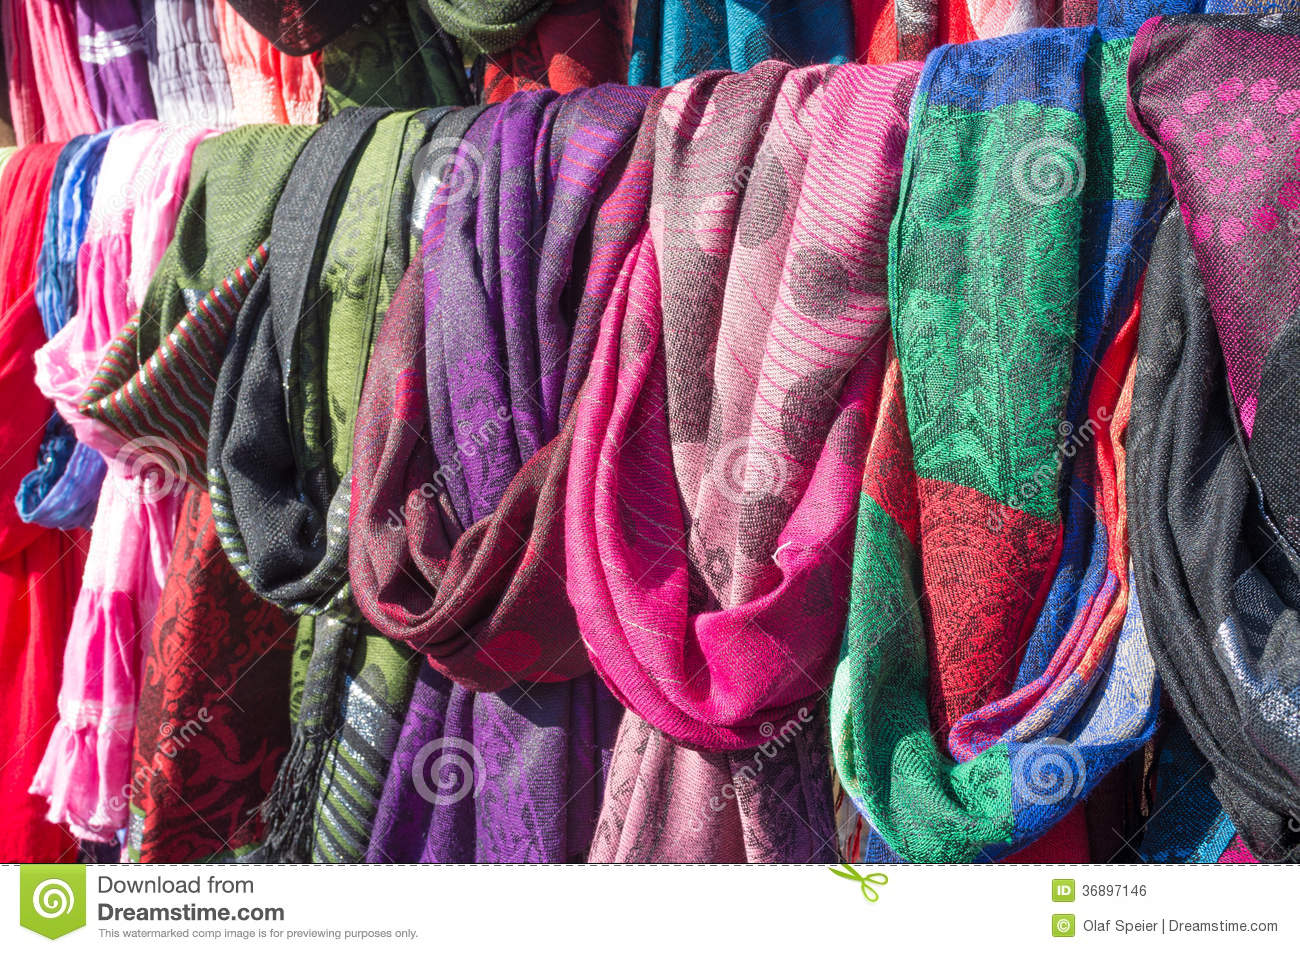 Scarves on a market stall